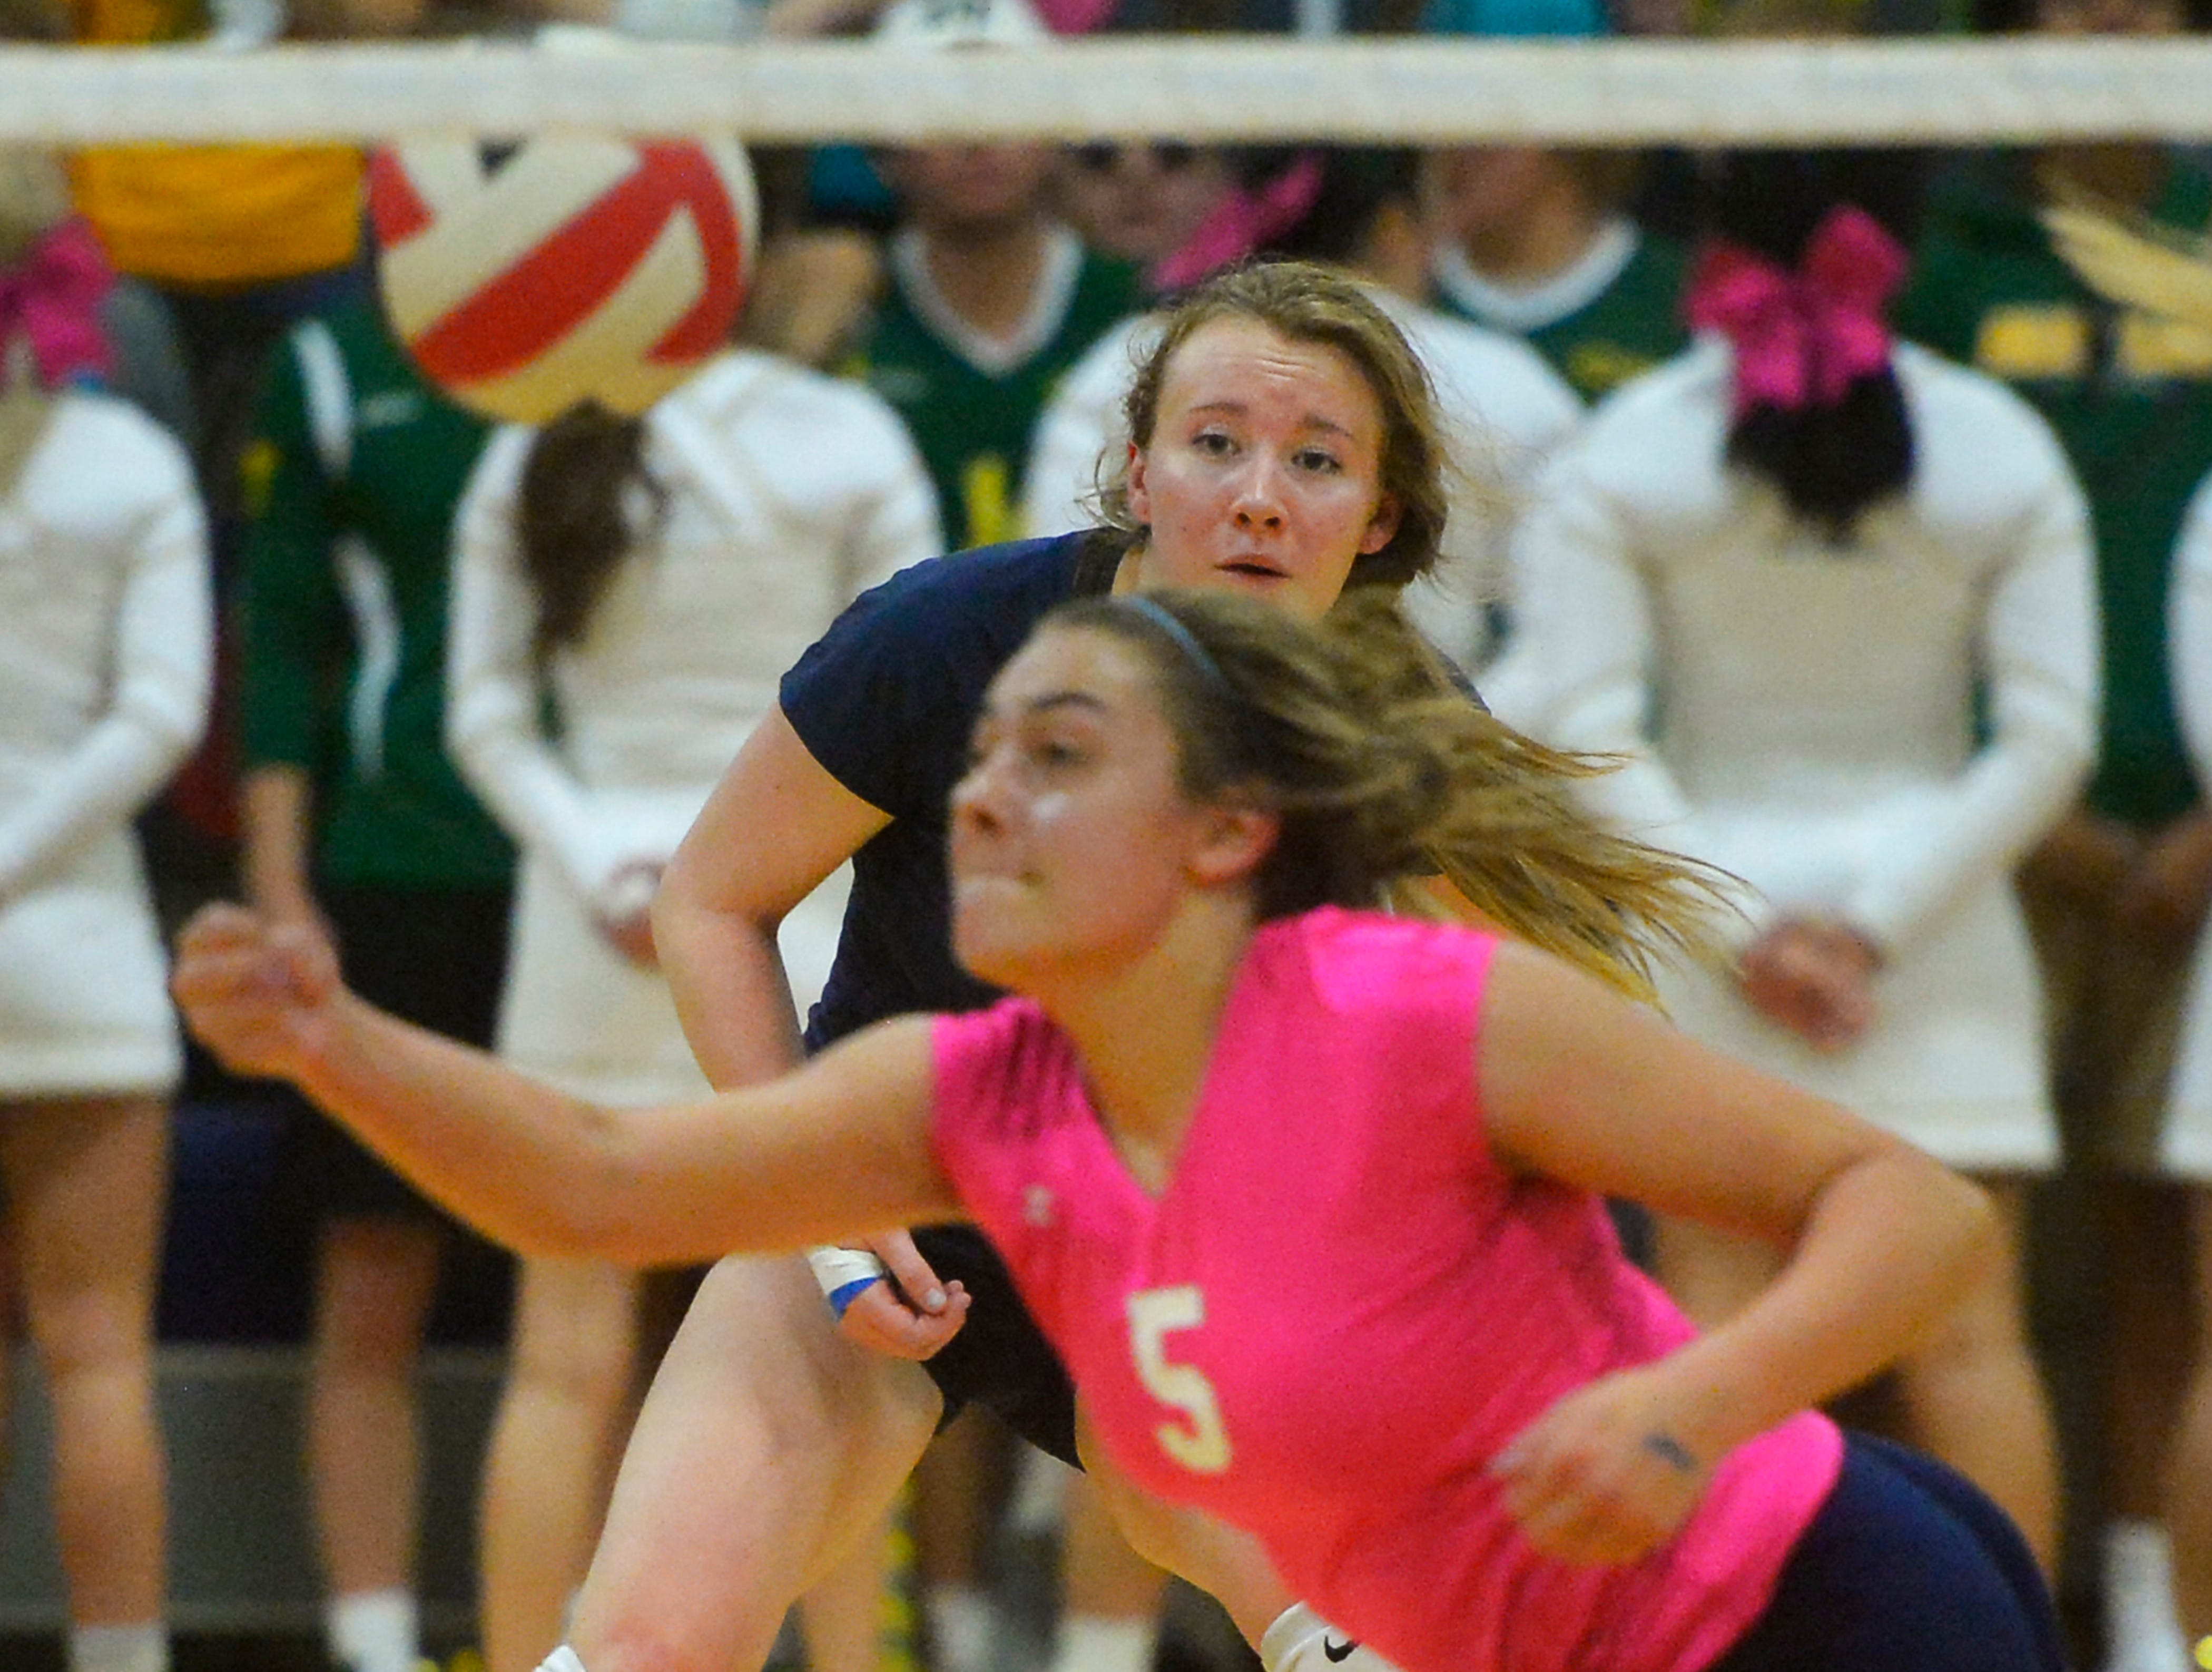 The crosstown volleyball match in the Swarthout Fieldhouse, Tuesday.